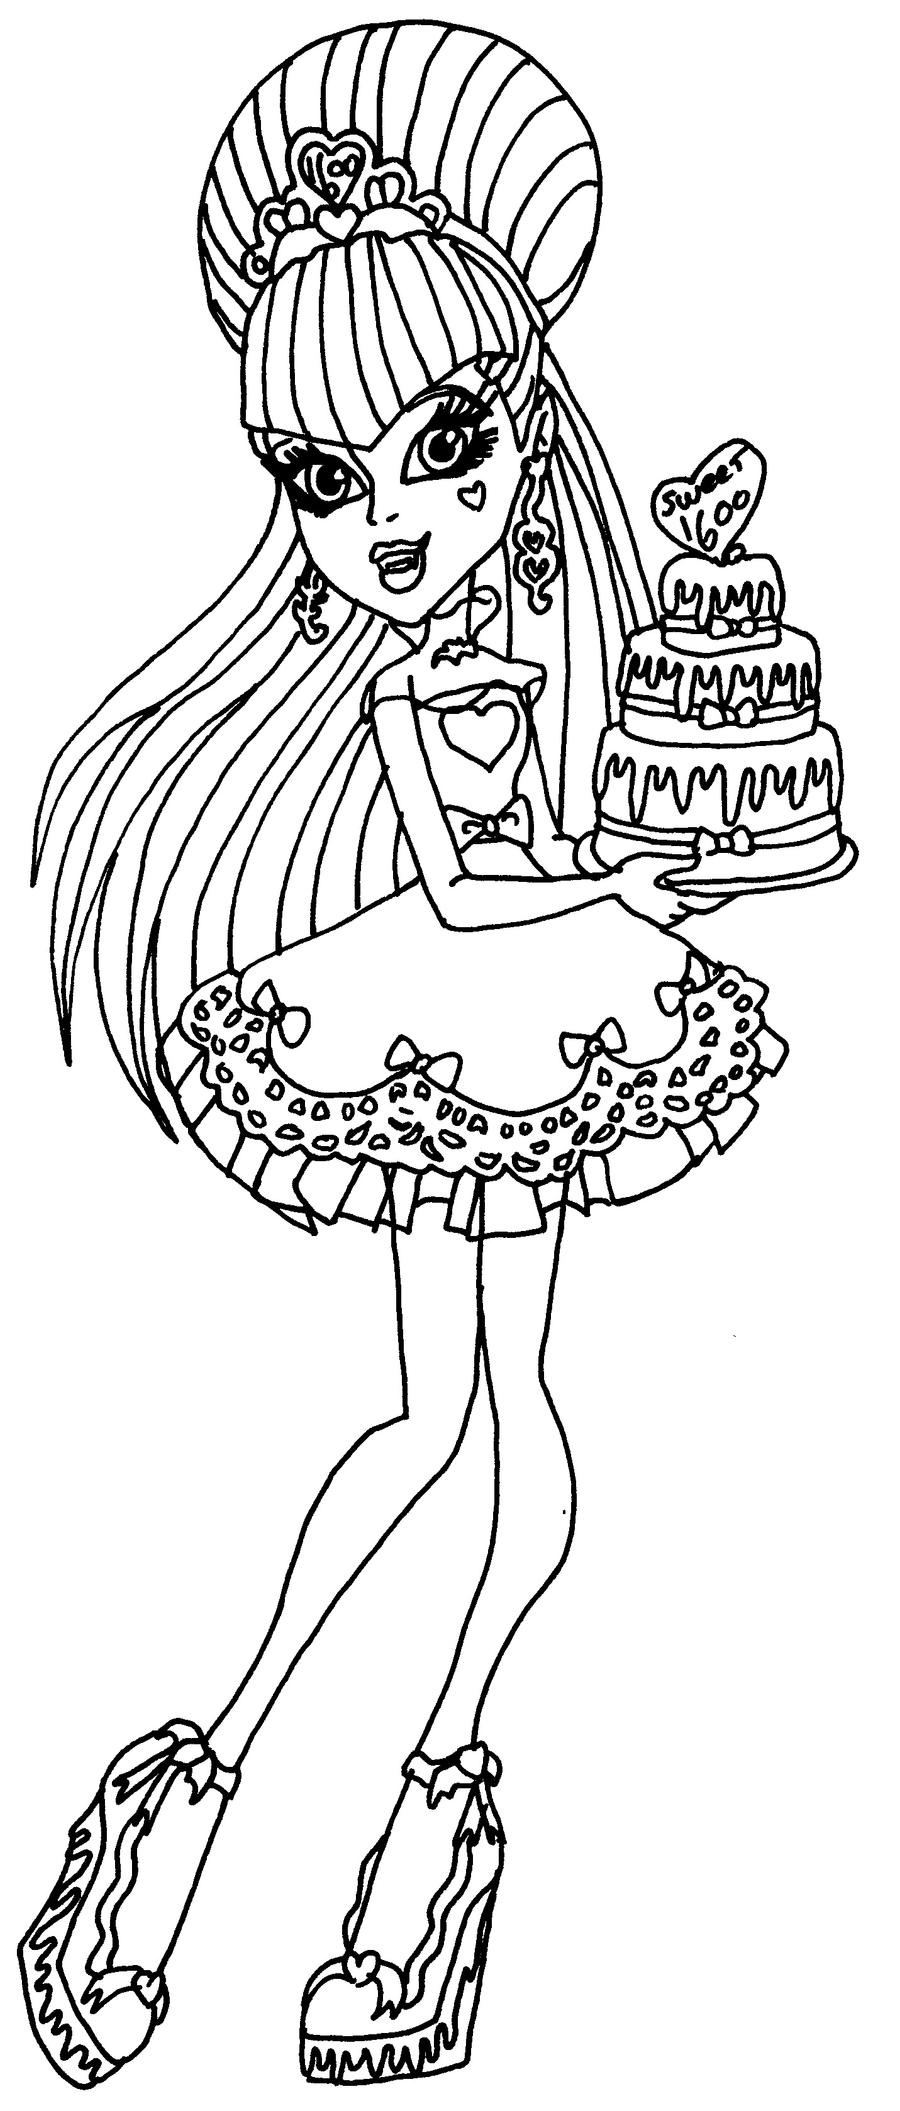 Draculaura sweet 1600 by elfkena on deviantart for Draculaura monster high coloring pages